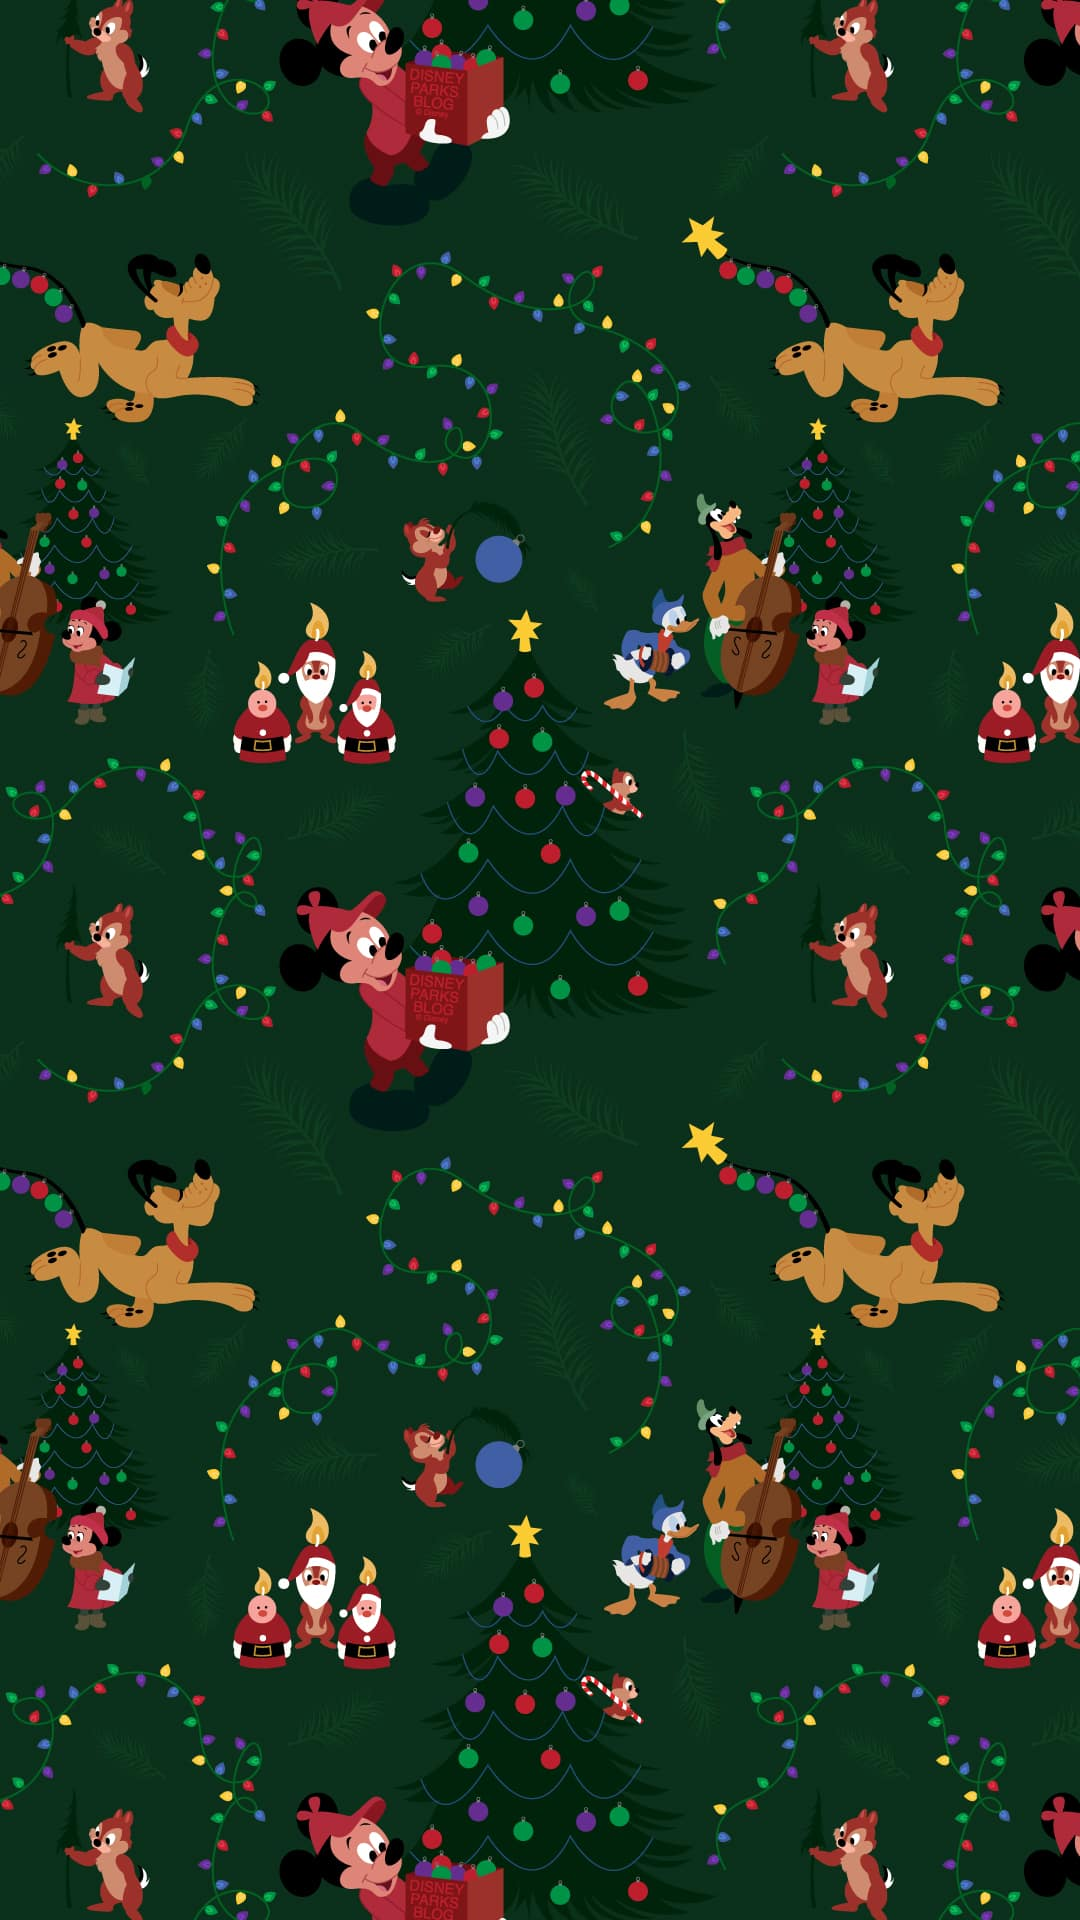 2019 Mickey Mouse & Pluto Christmas Wallpaper – iPhone/Android | Disney  Parks Blog